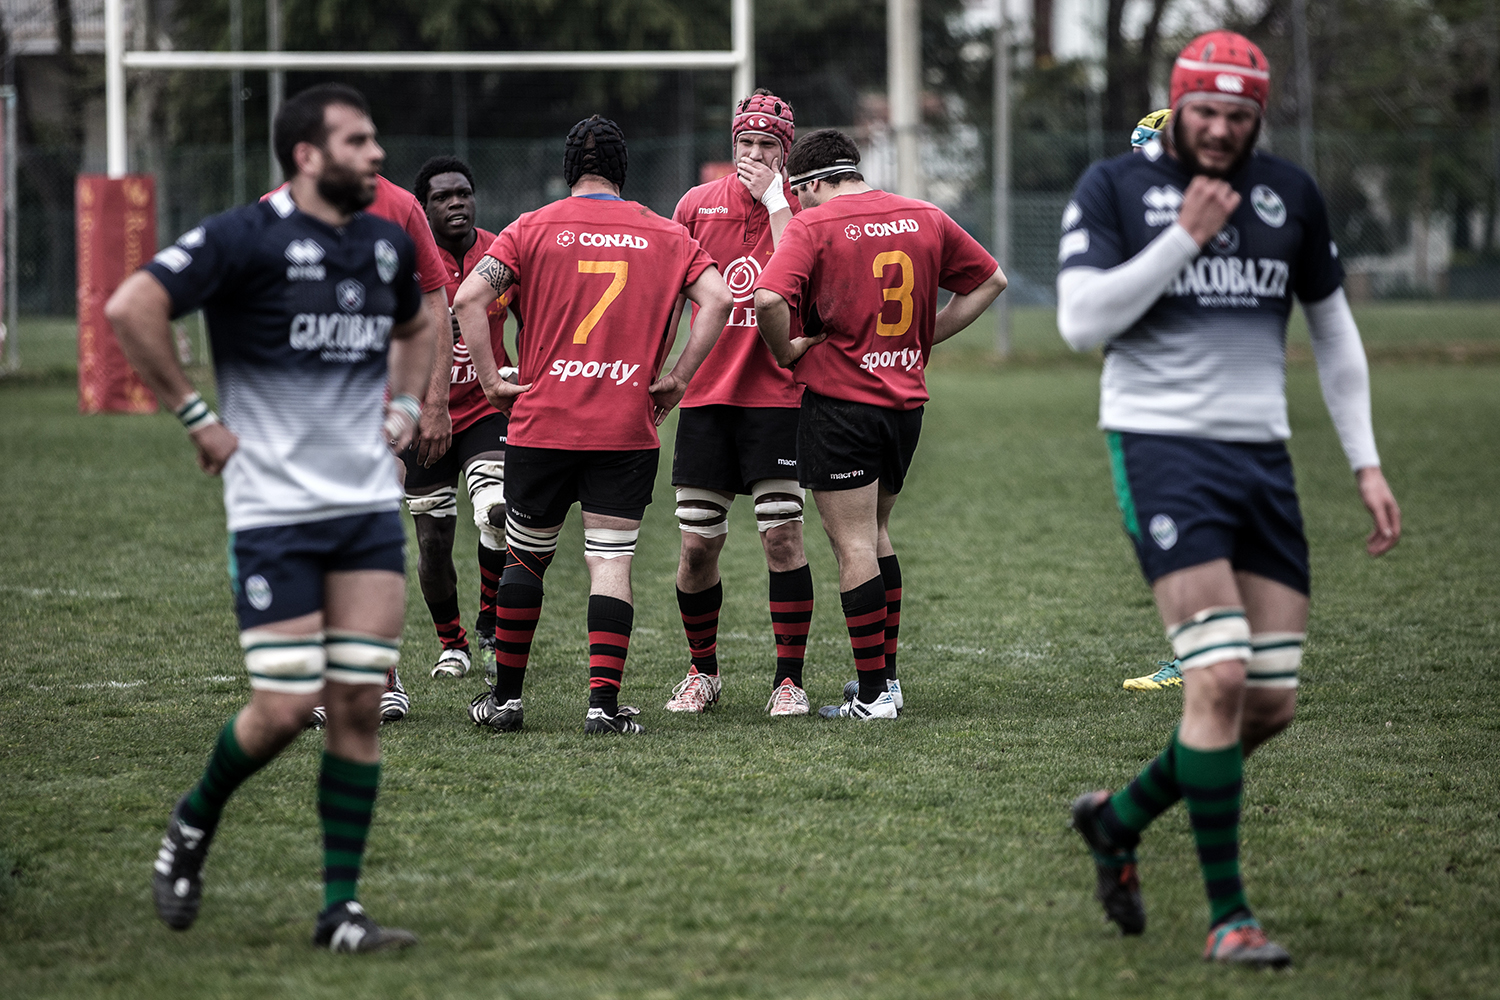 rugby_photograph_06.jpg